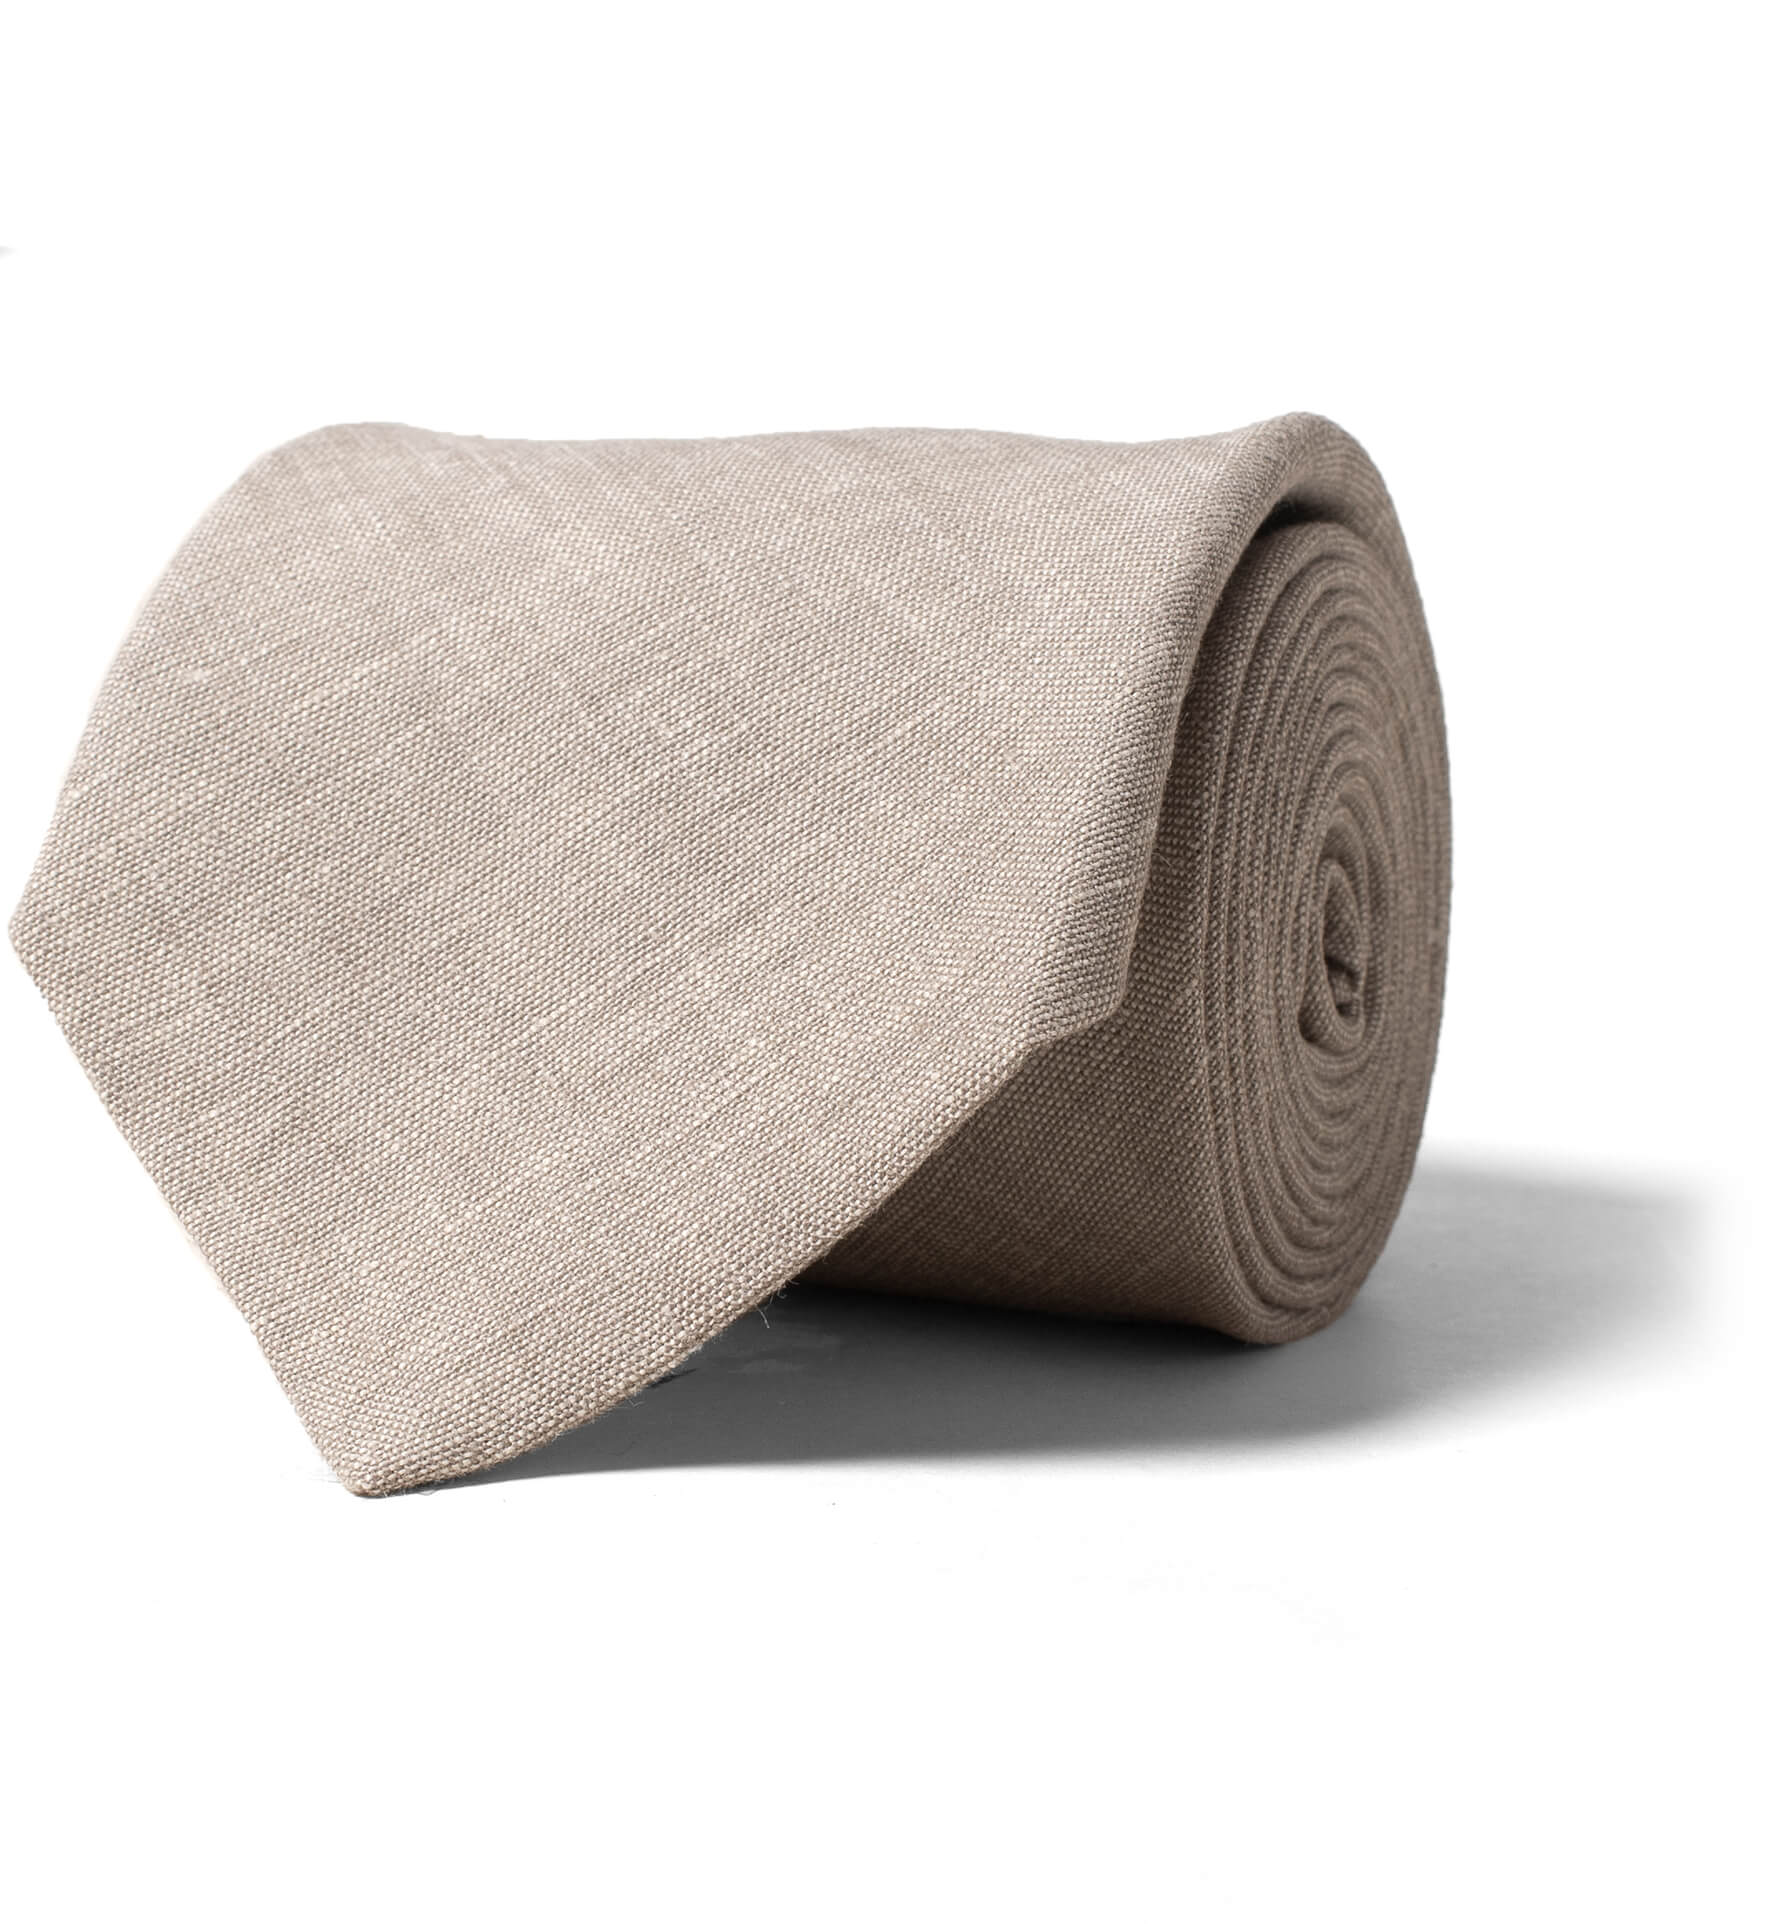 Zoom Image of Beige Solid Linen Tie